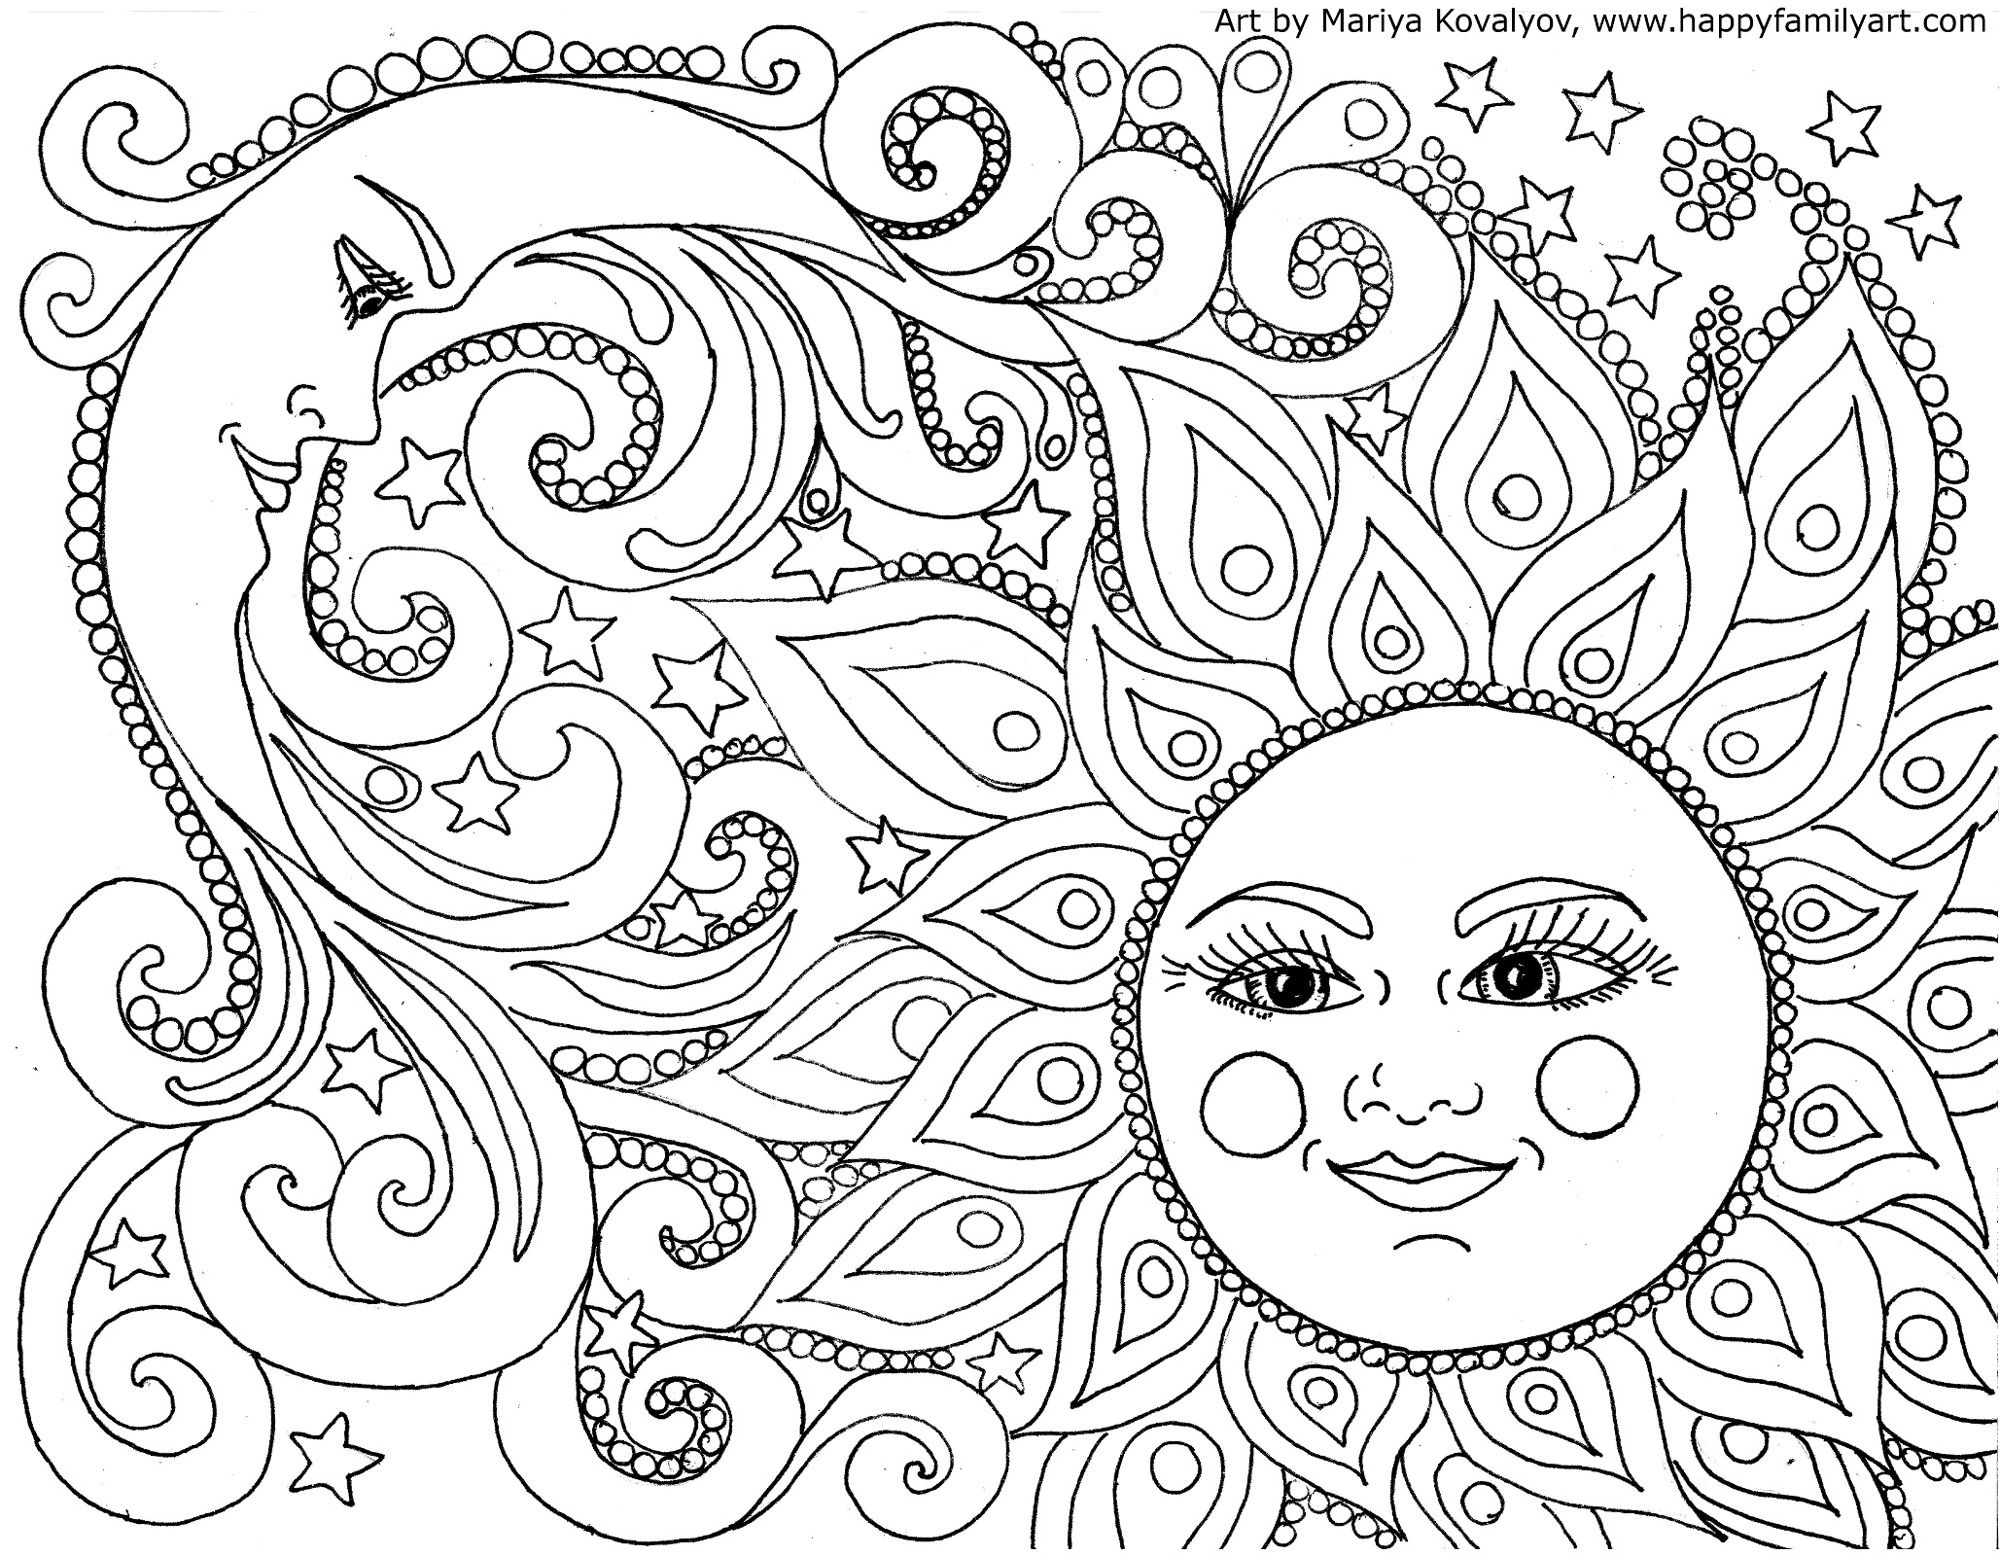 Dibujos Para Colorear Adultos Para Imprimir: Original And Fun Coloring Pages